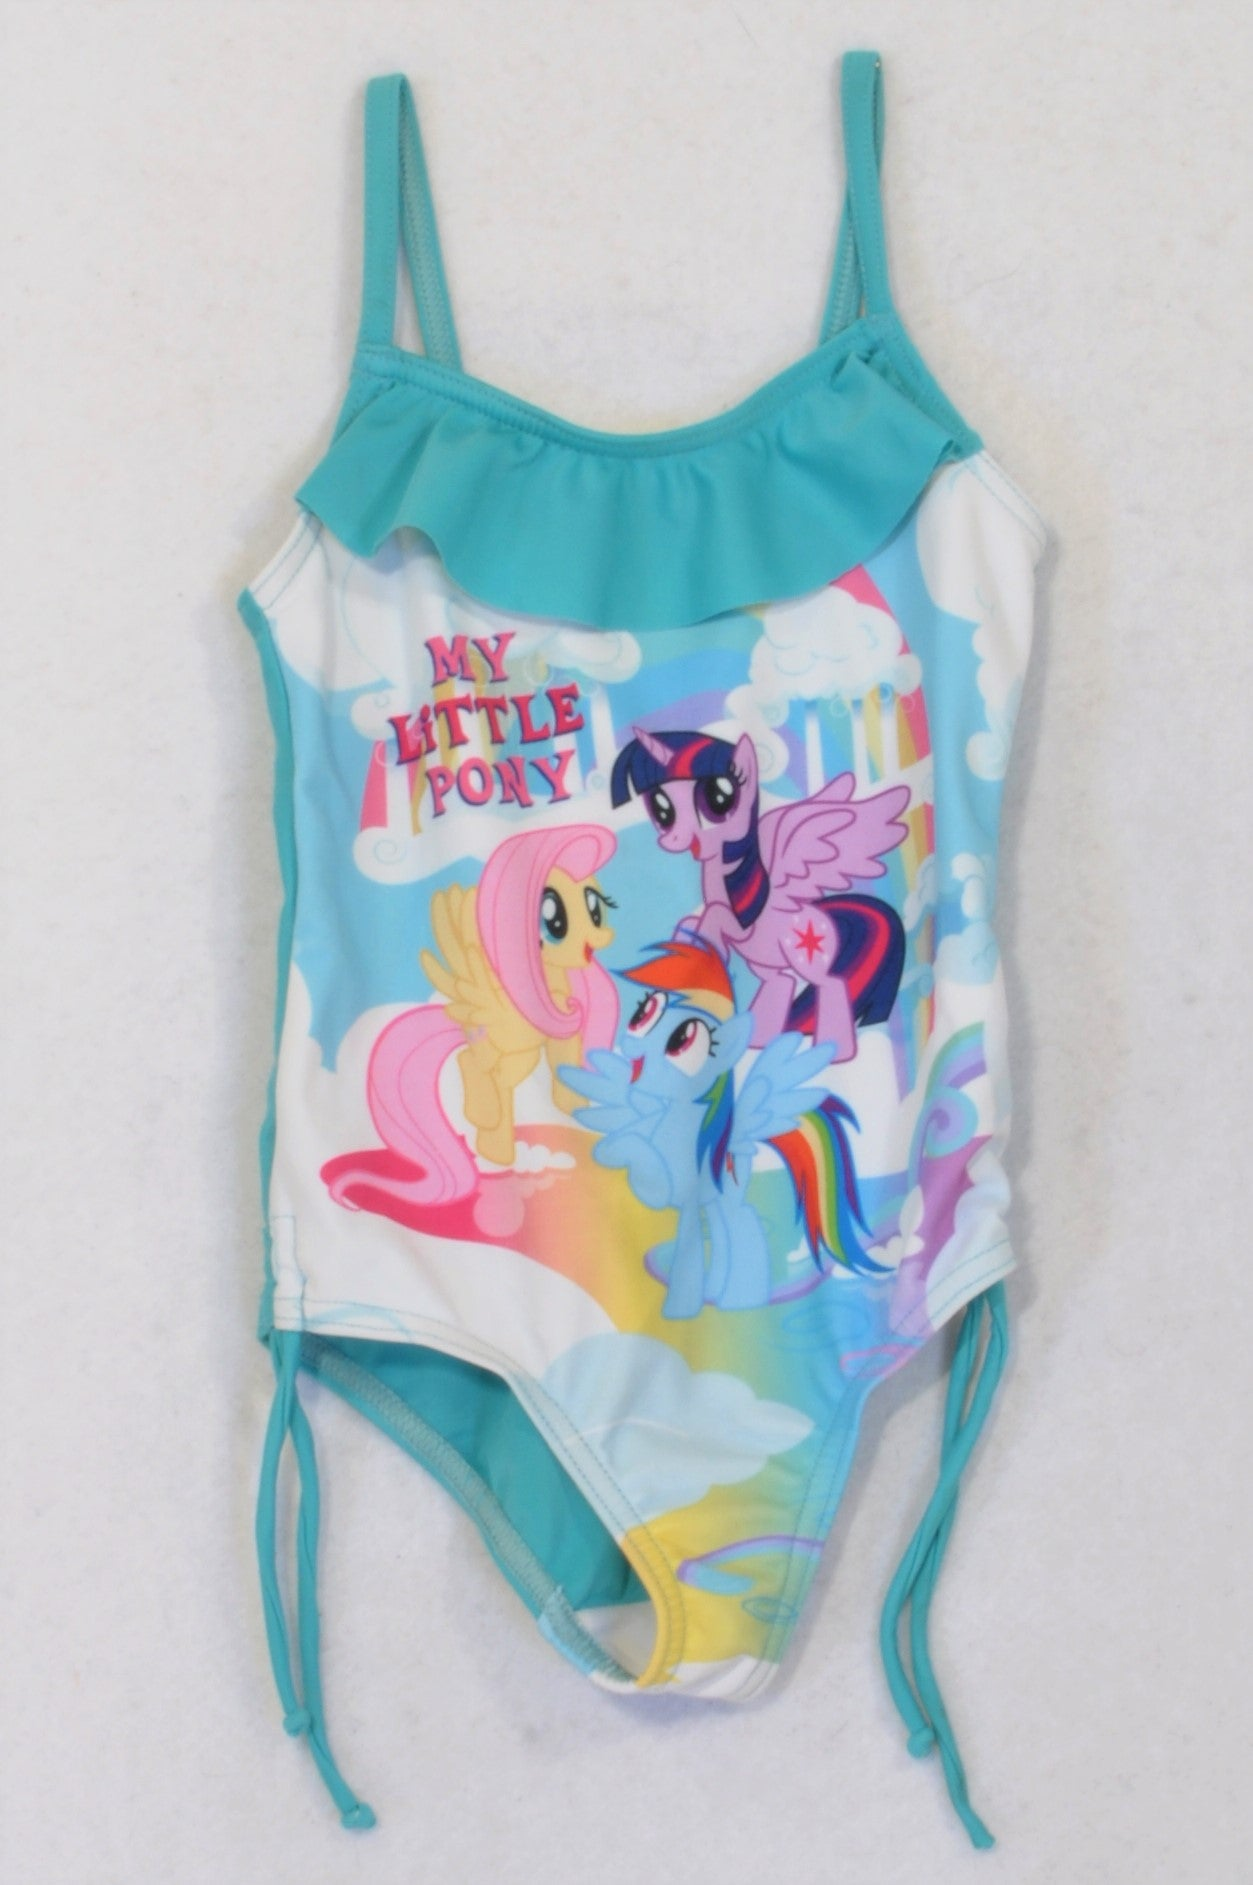 My Little Pony Soft Blue Rainbow Frill Swim Suit Girls 3-4 years